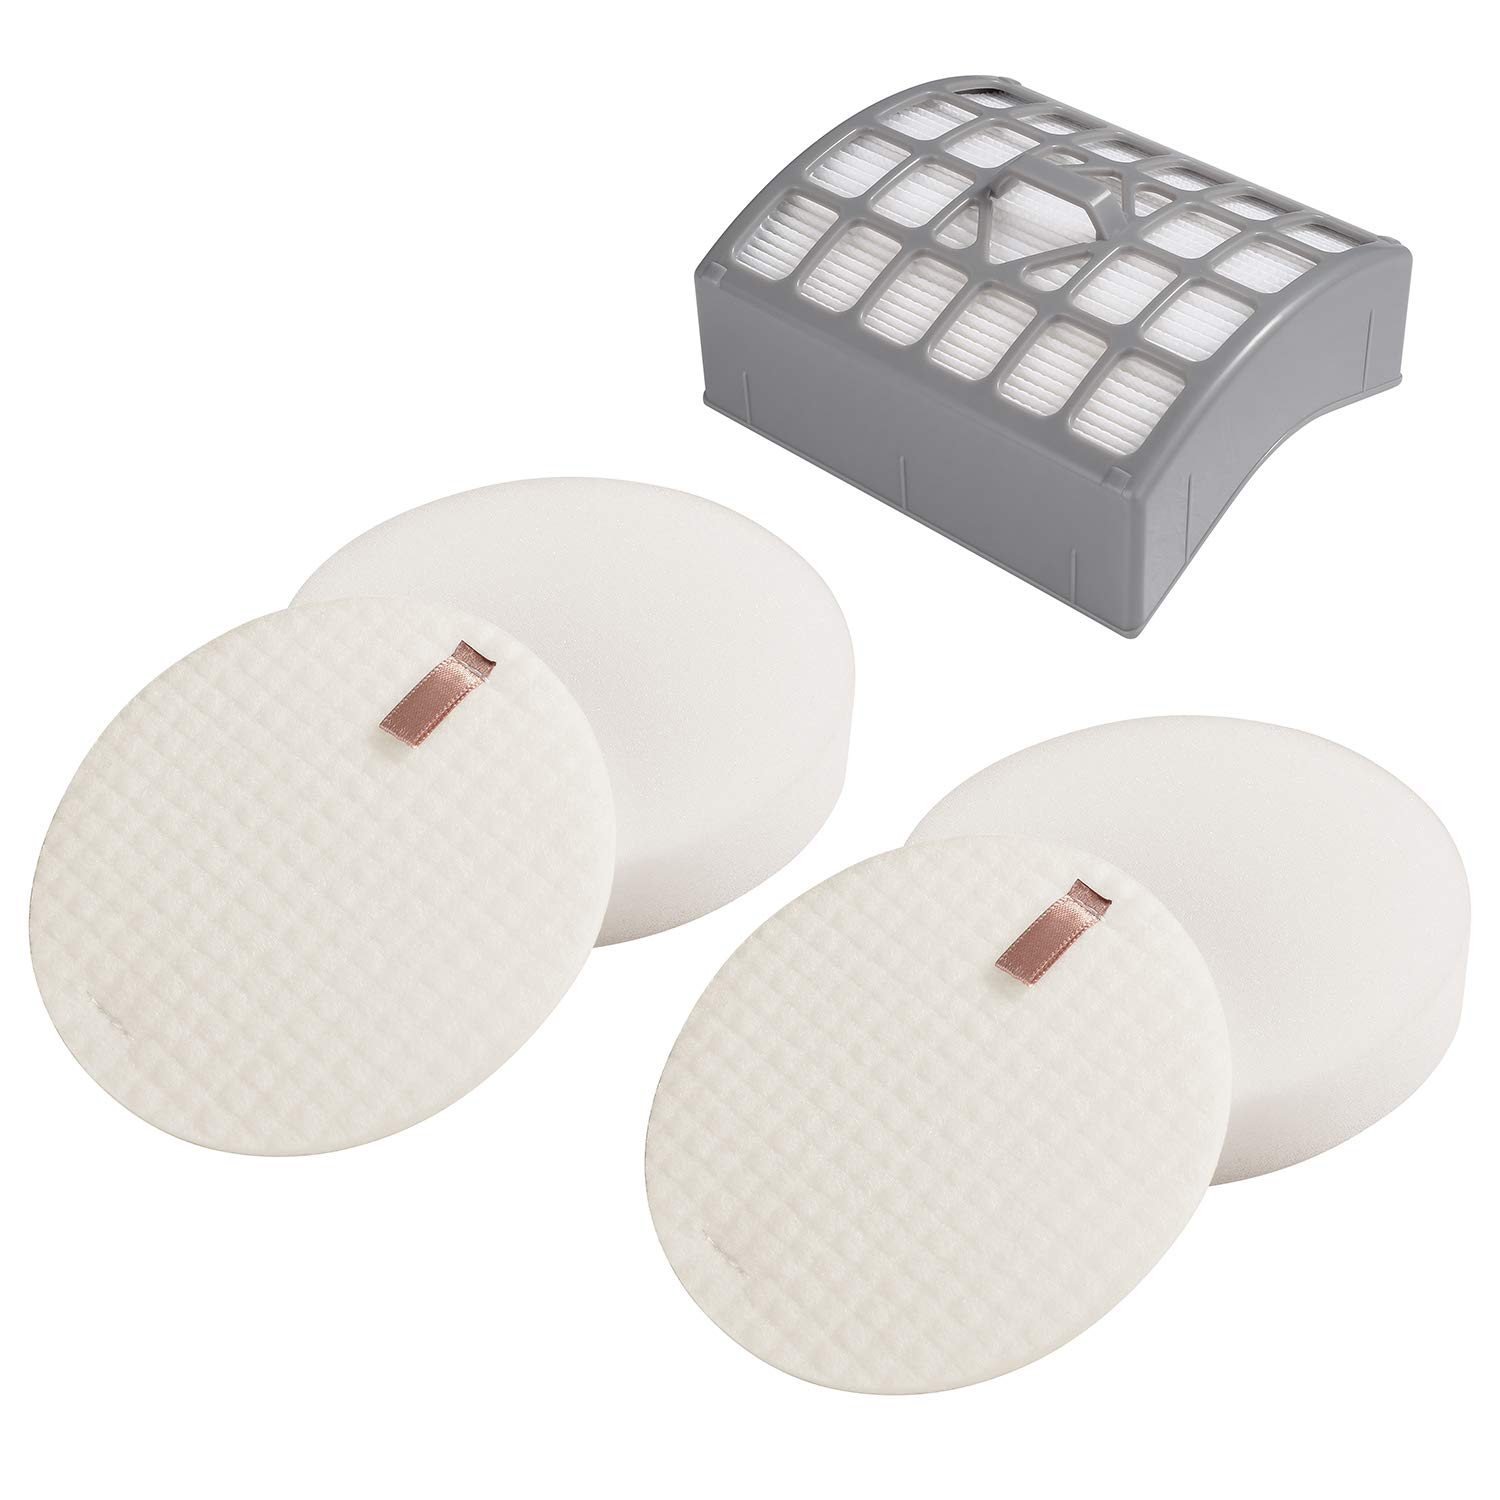 B07GSVS1NH ITidyHome Vacuum Filter 1 Hepa Filter & 2 Foam Felt Filters for Shark Rotator Vacuum Filter Slim-Lite Lift-Away NV340 NV341 Foam & Felt Filter Kit Professional Vacuum Replacement Parts 61Ad2BU31gvL